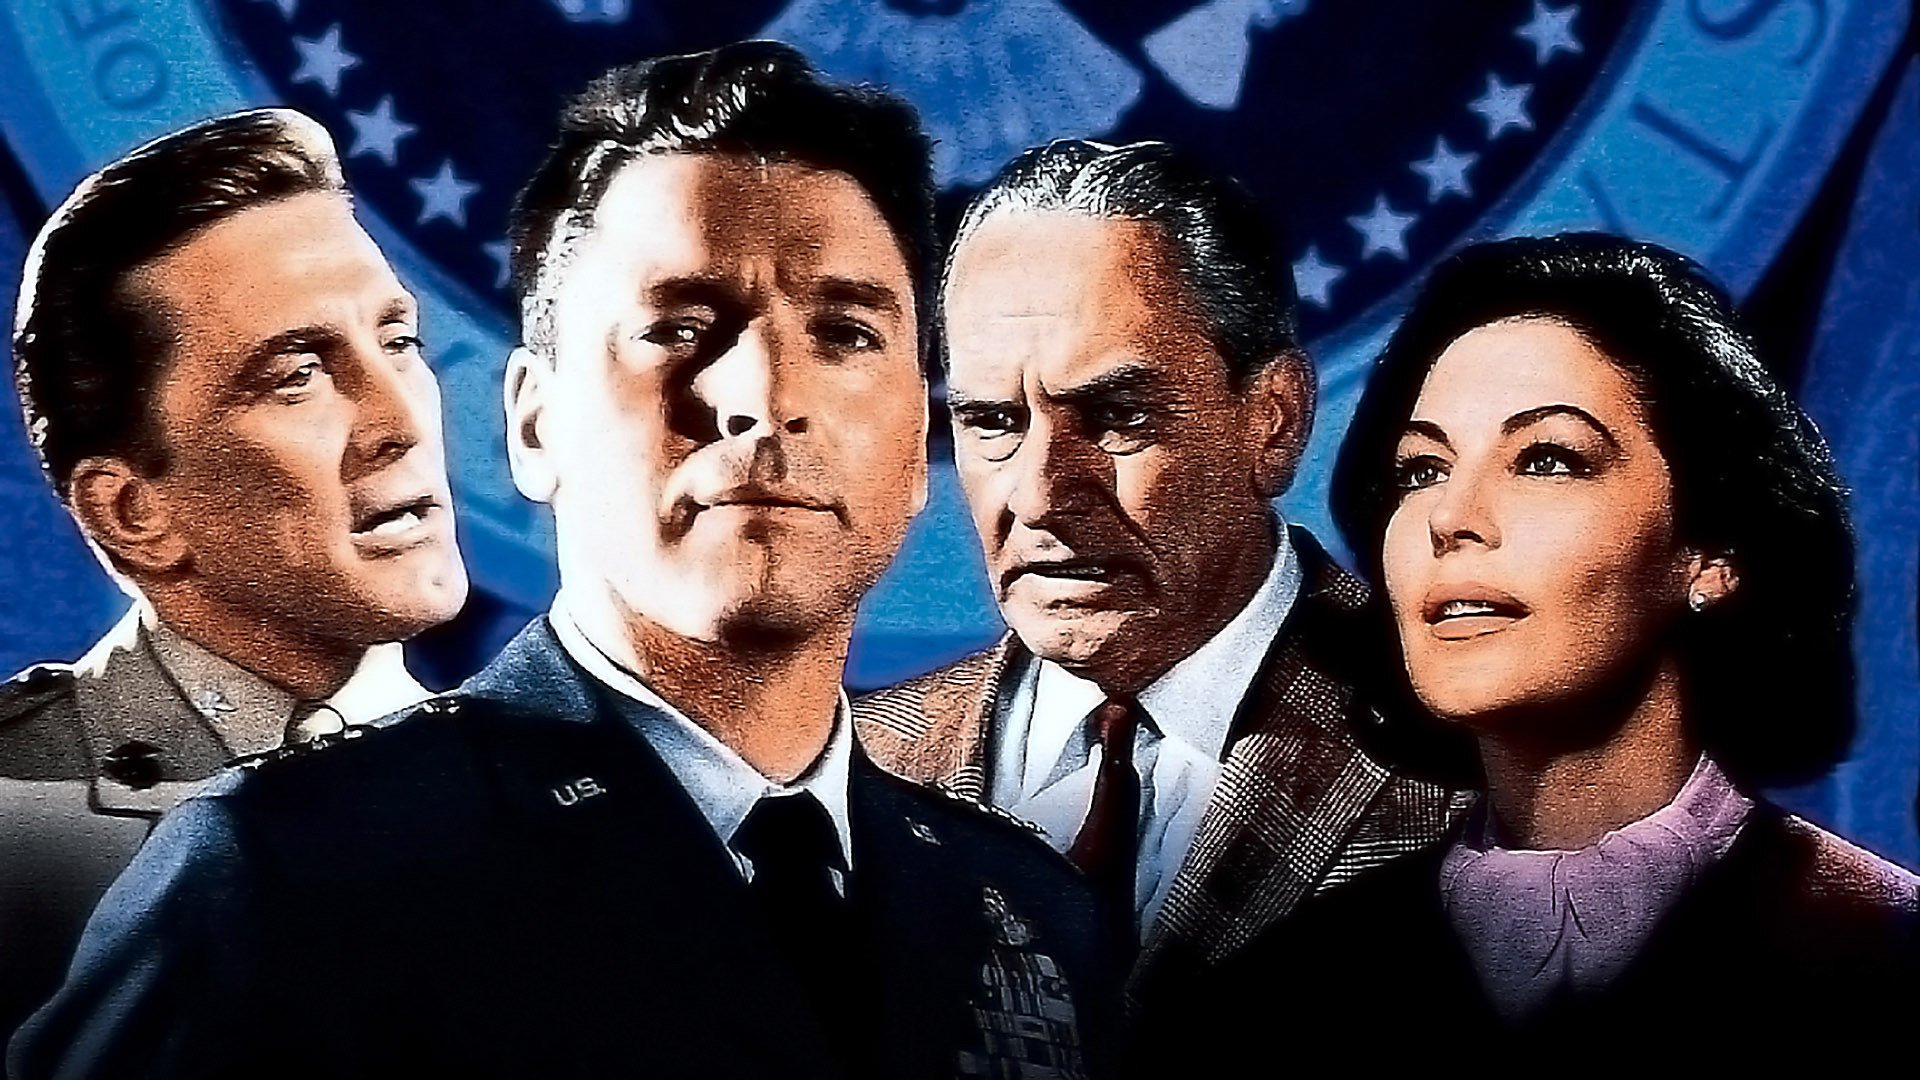 Poster art featuring the principal protagonists in John Frankenheimer's  Seven Days in May.